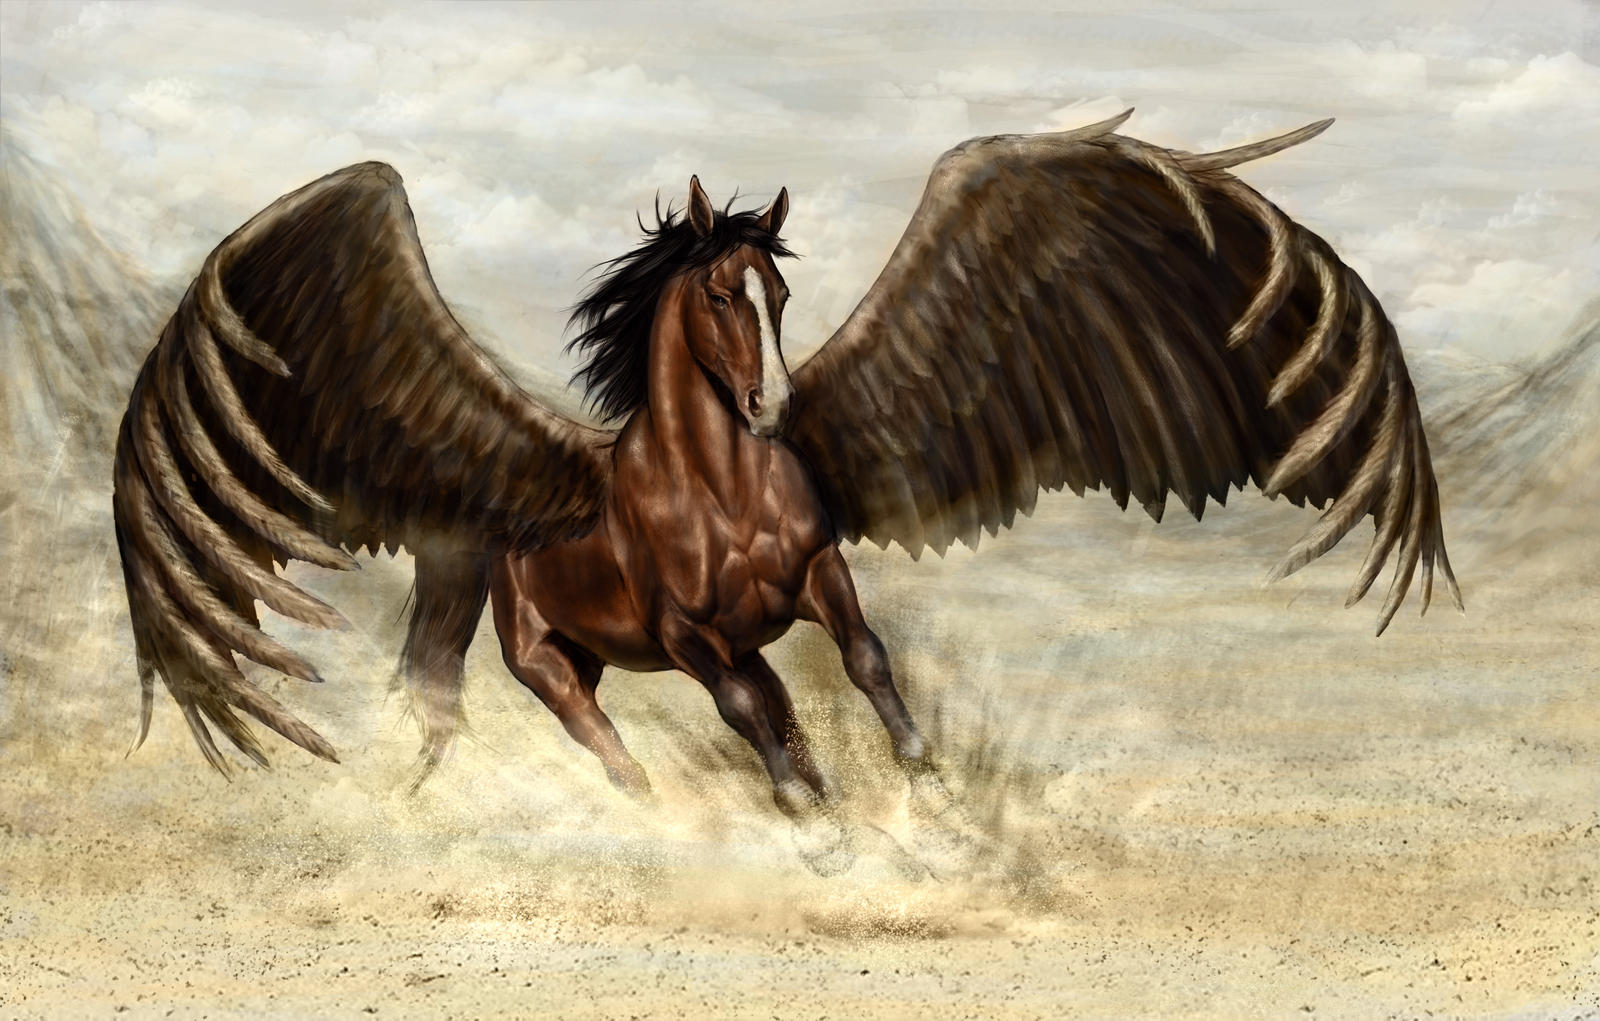 Horse with wings by DaniloLatino